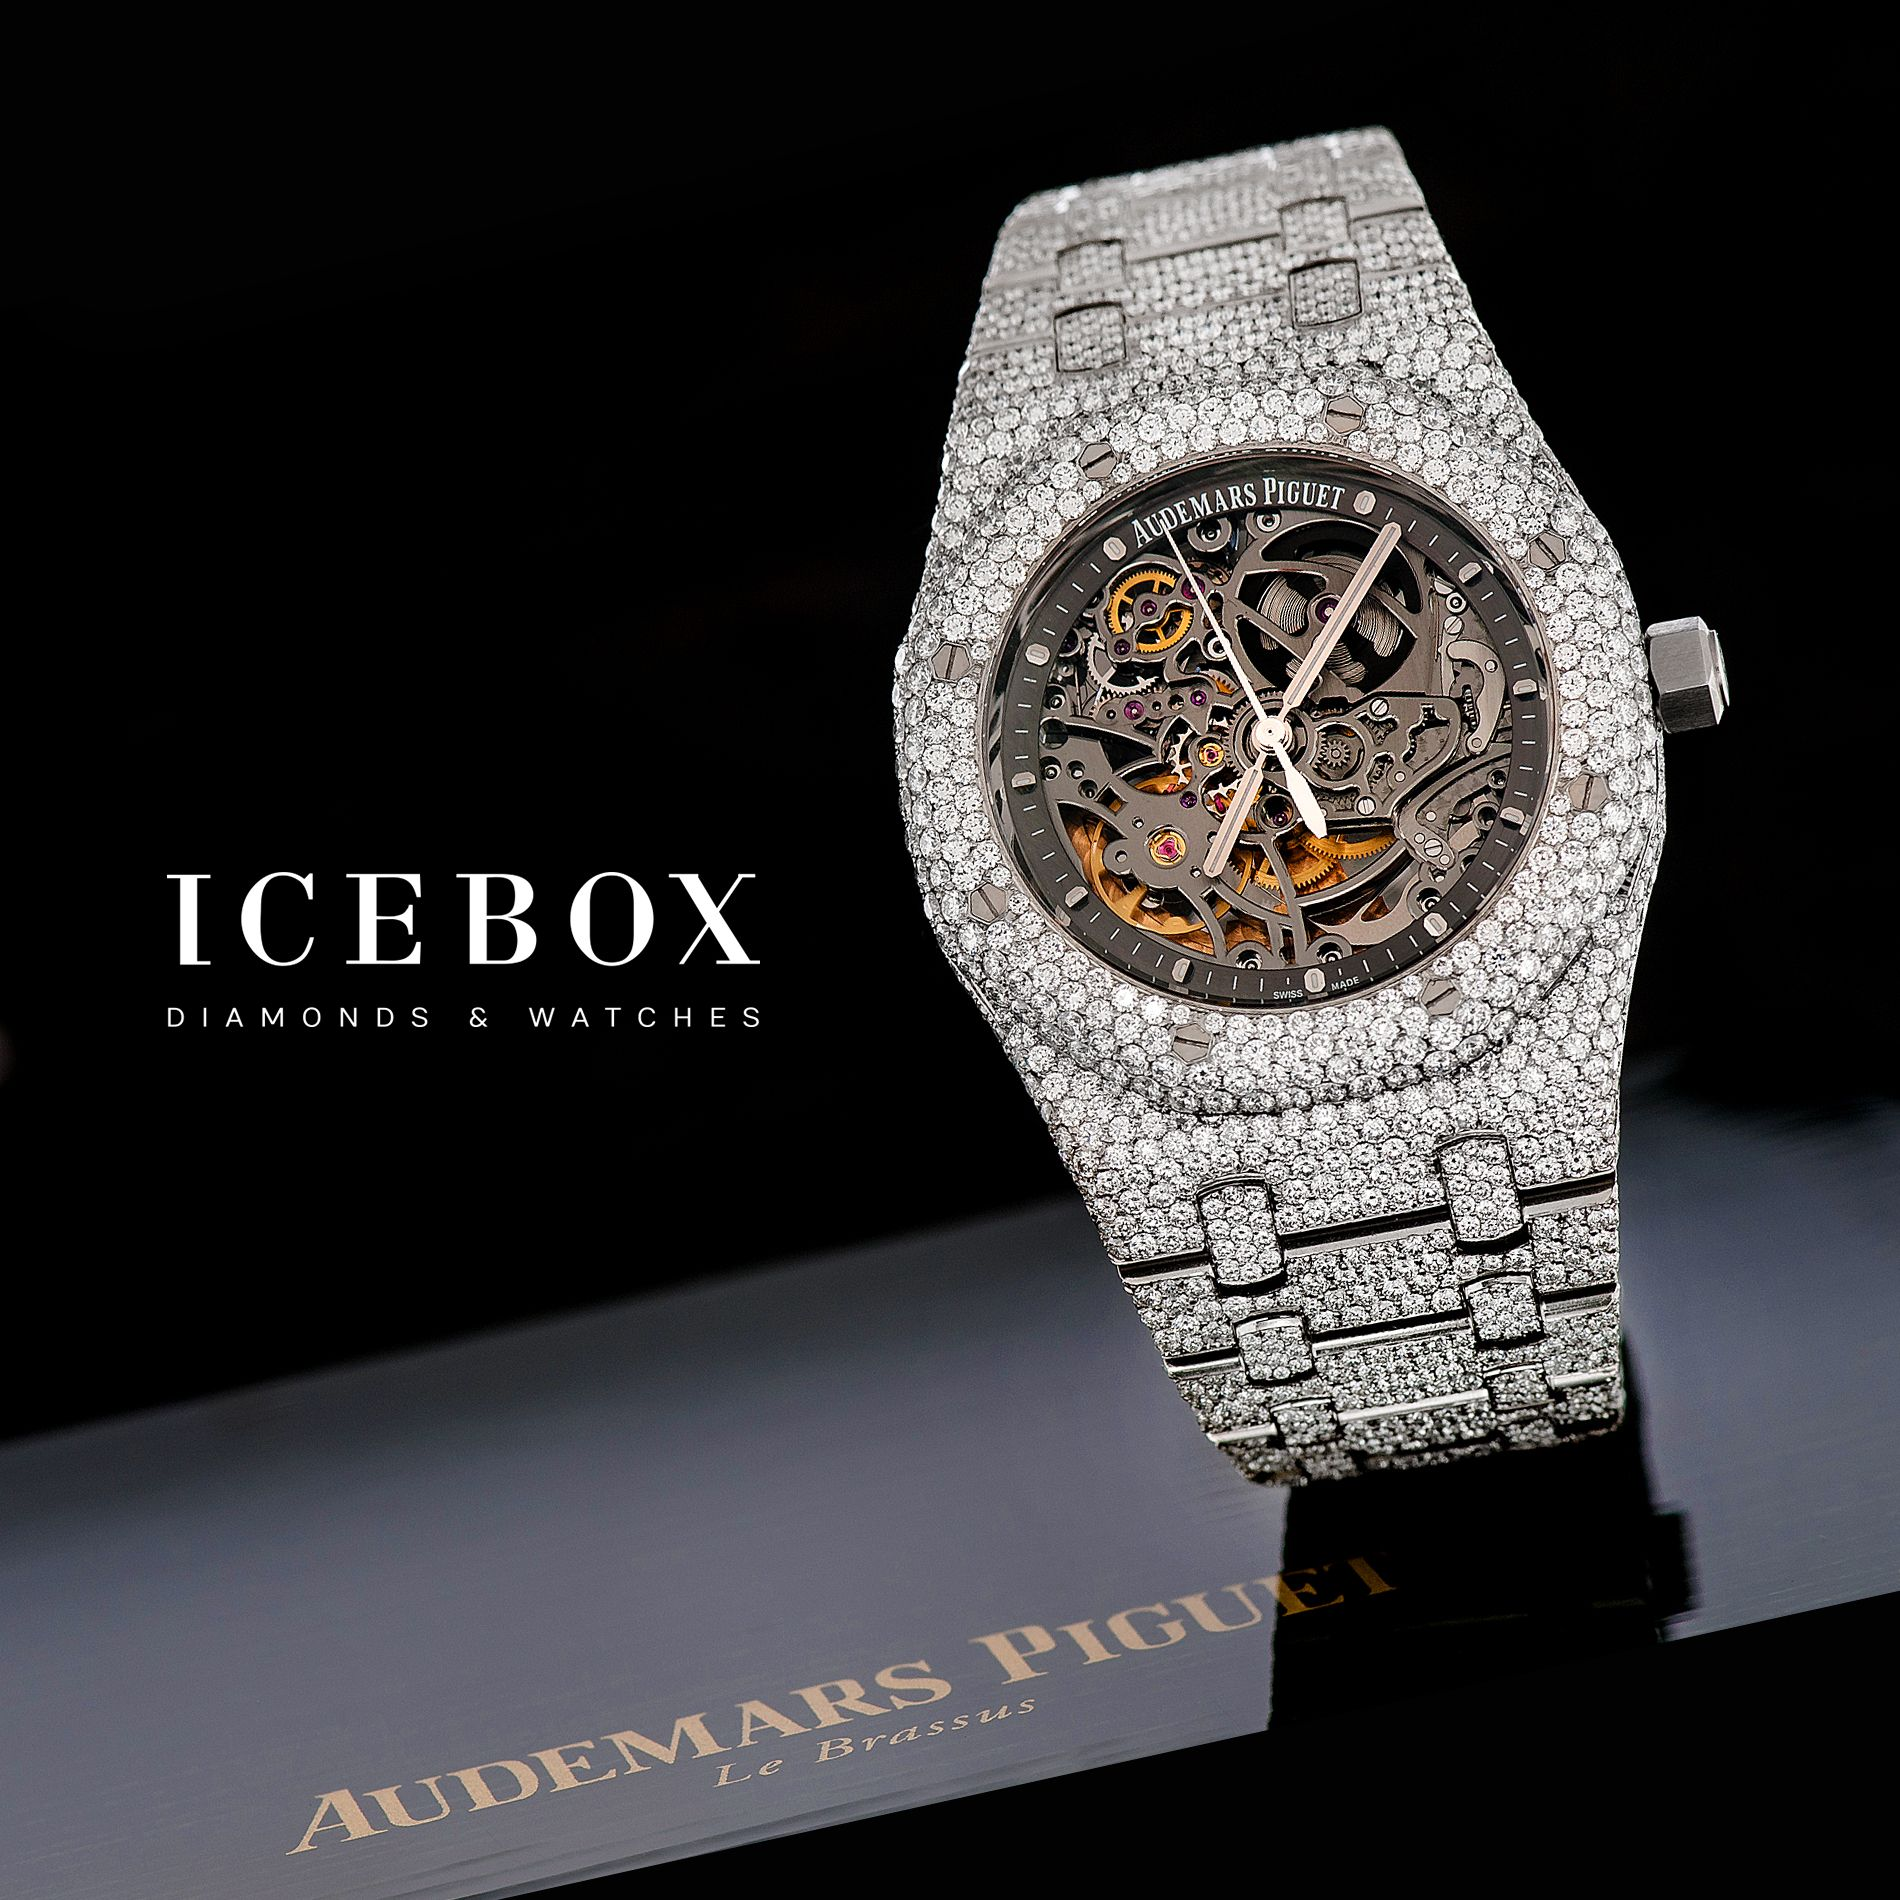 Pin by Icebox Diamonds & Watches on Audemars Piguet in ...